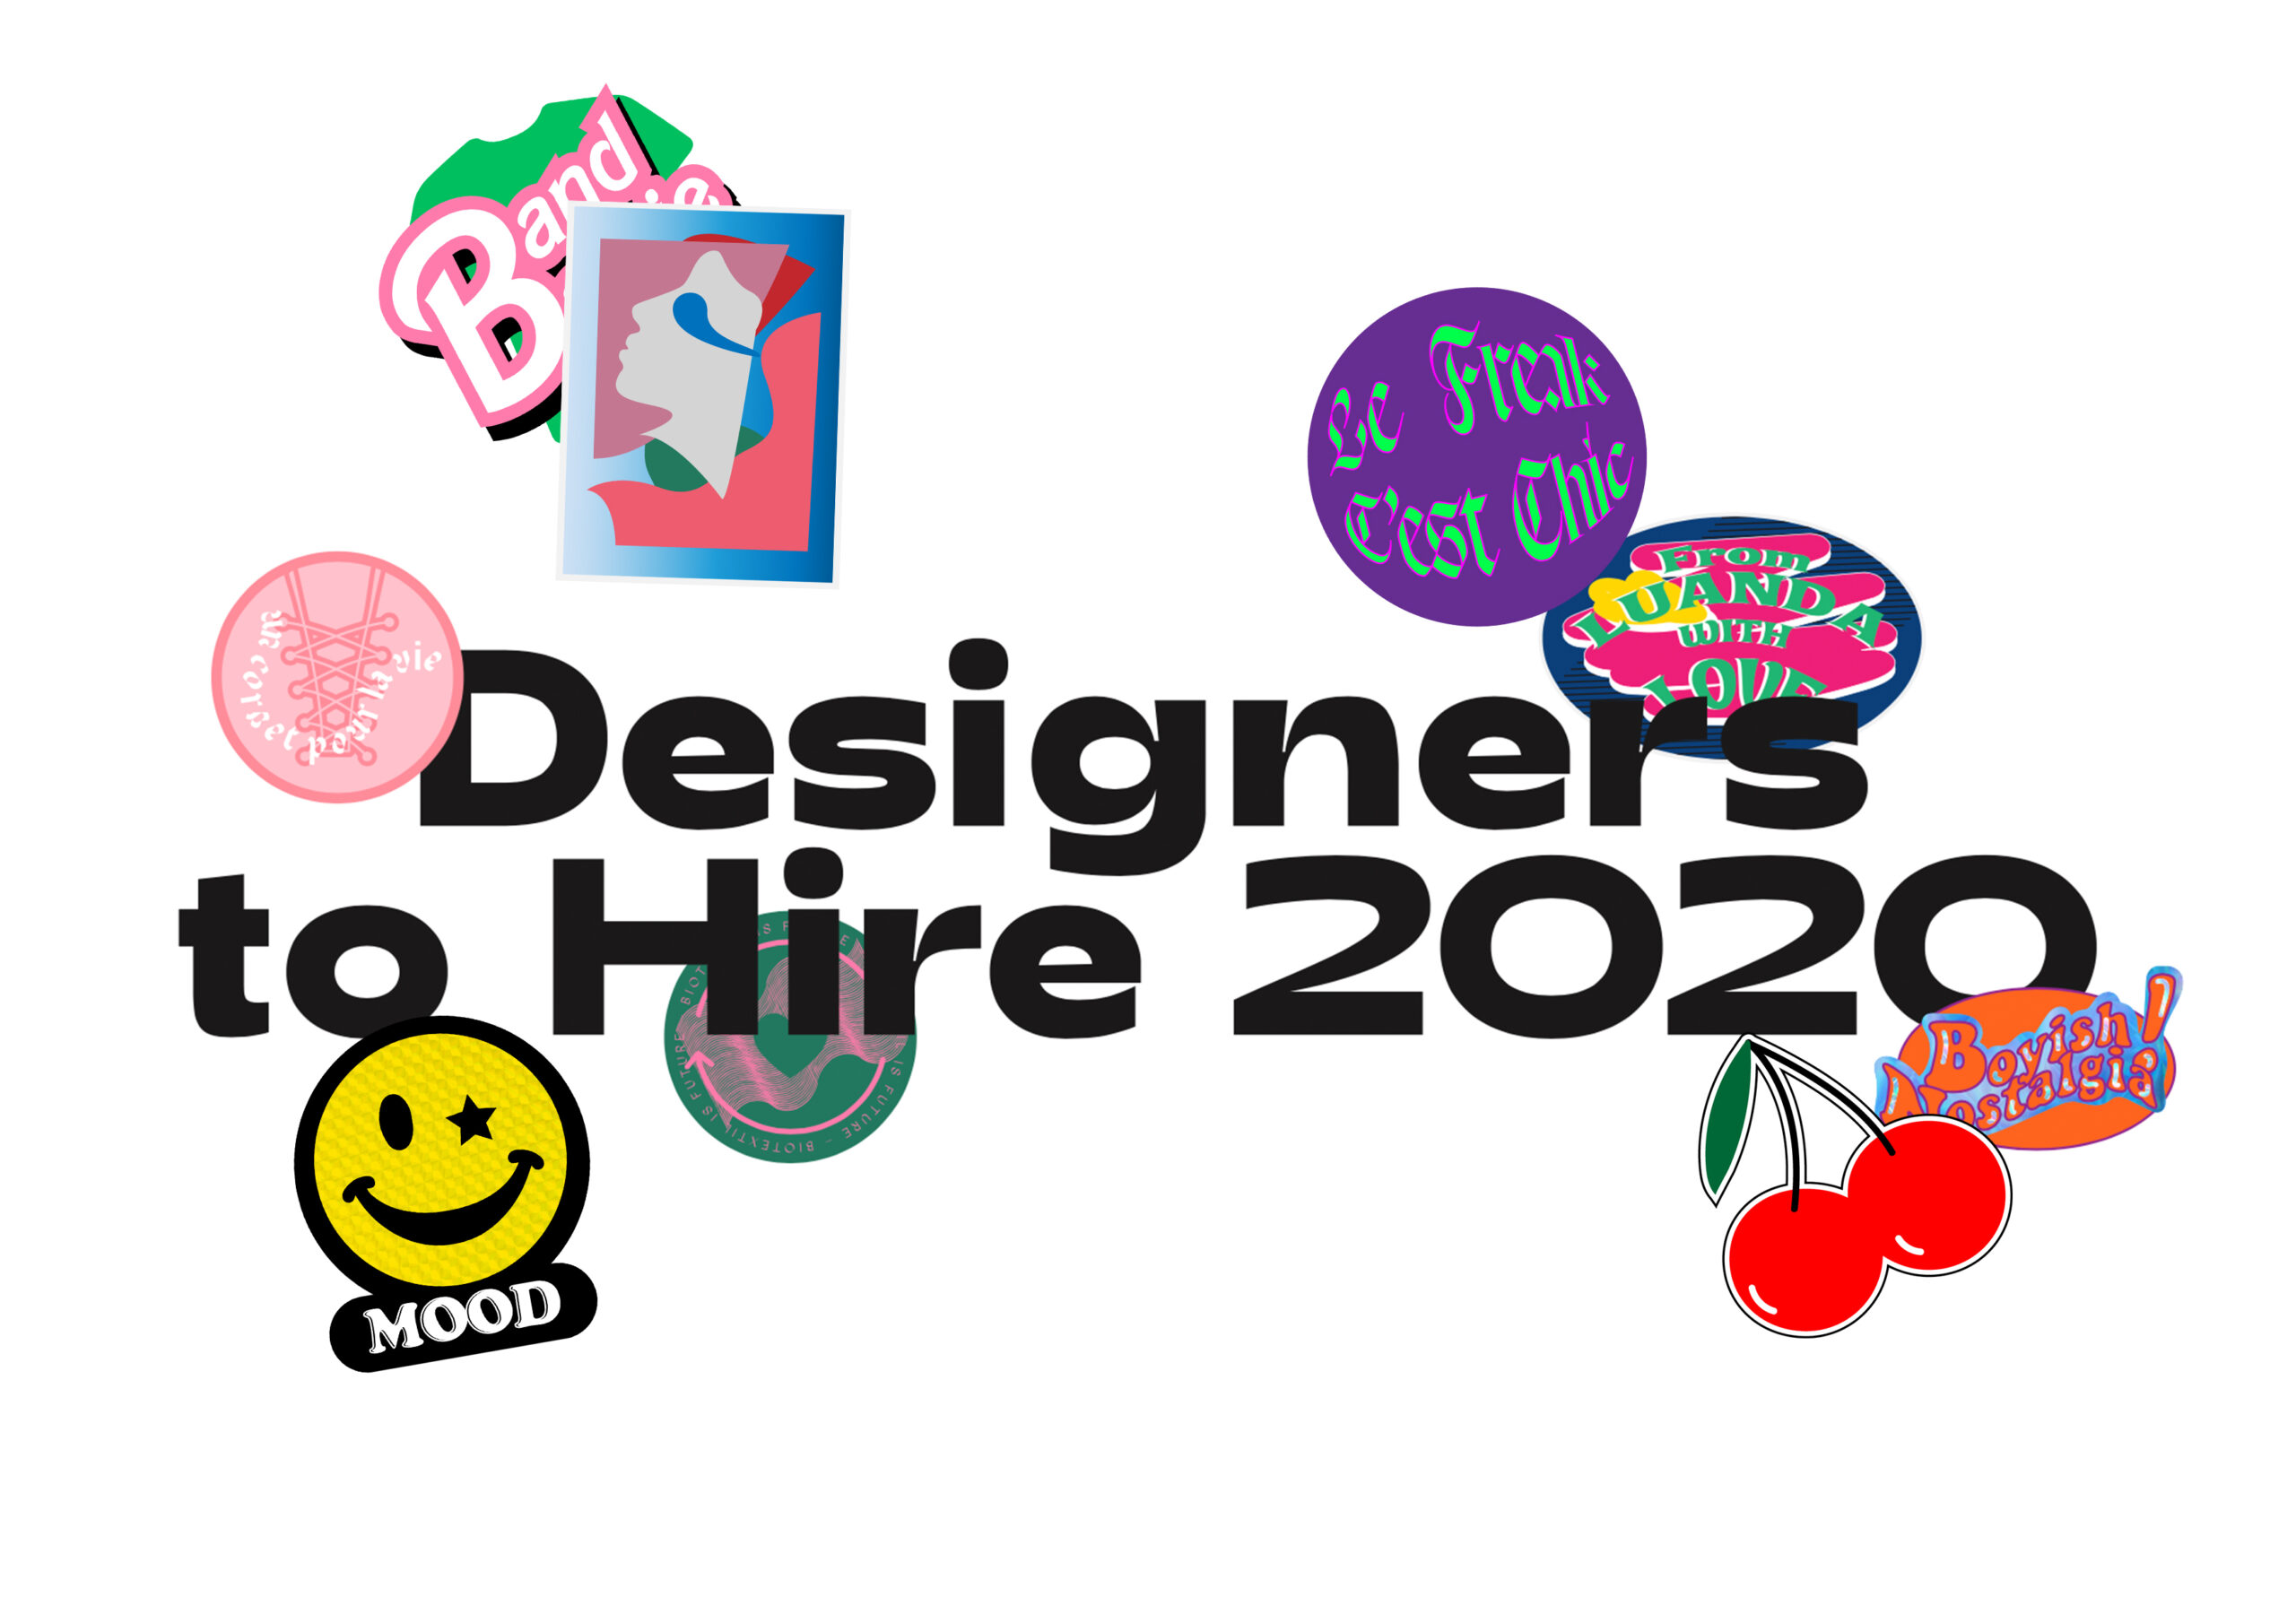 1 Granary x Pinterest: Designers to hire 2020